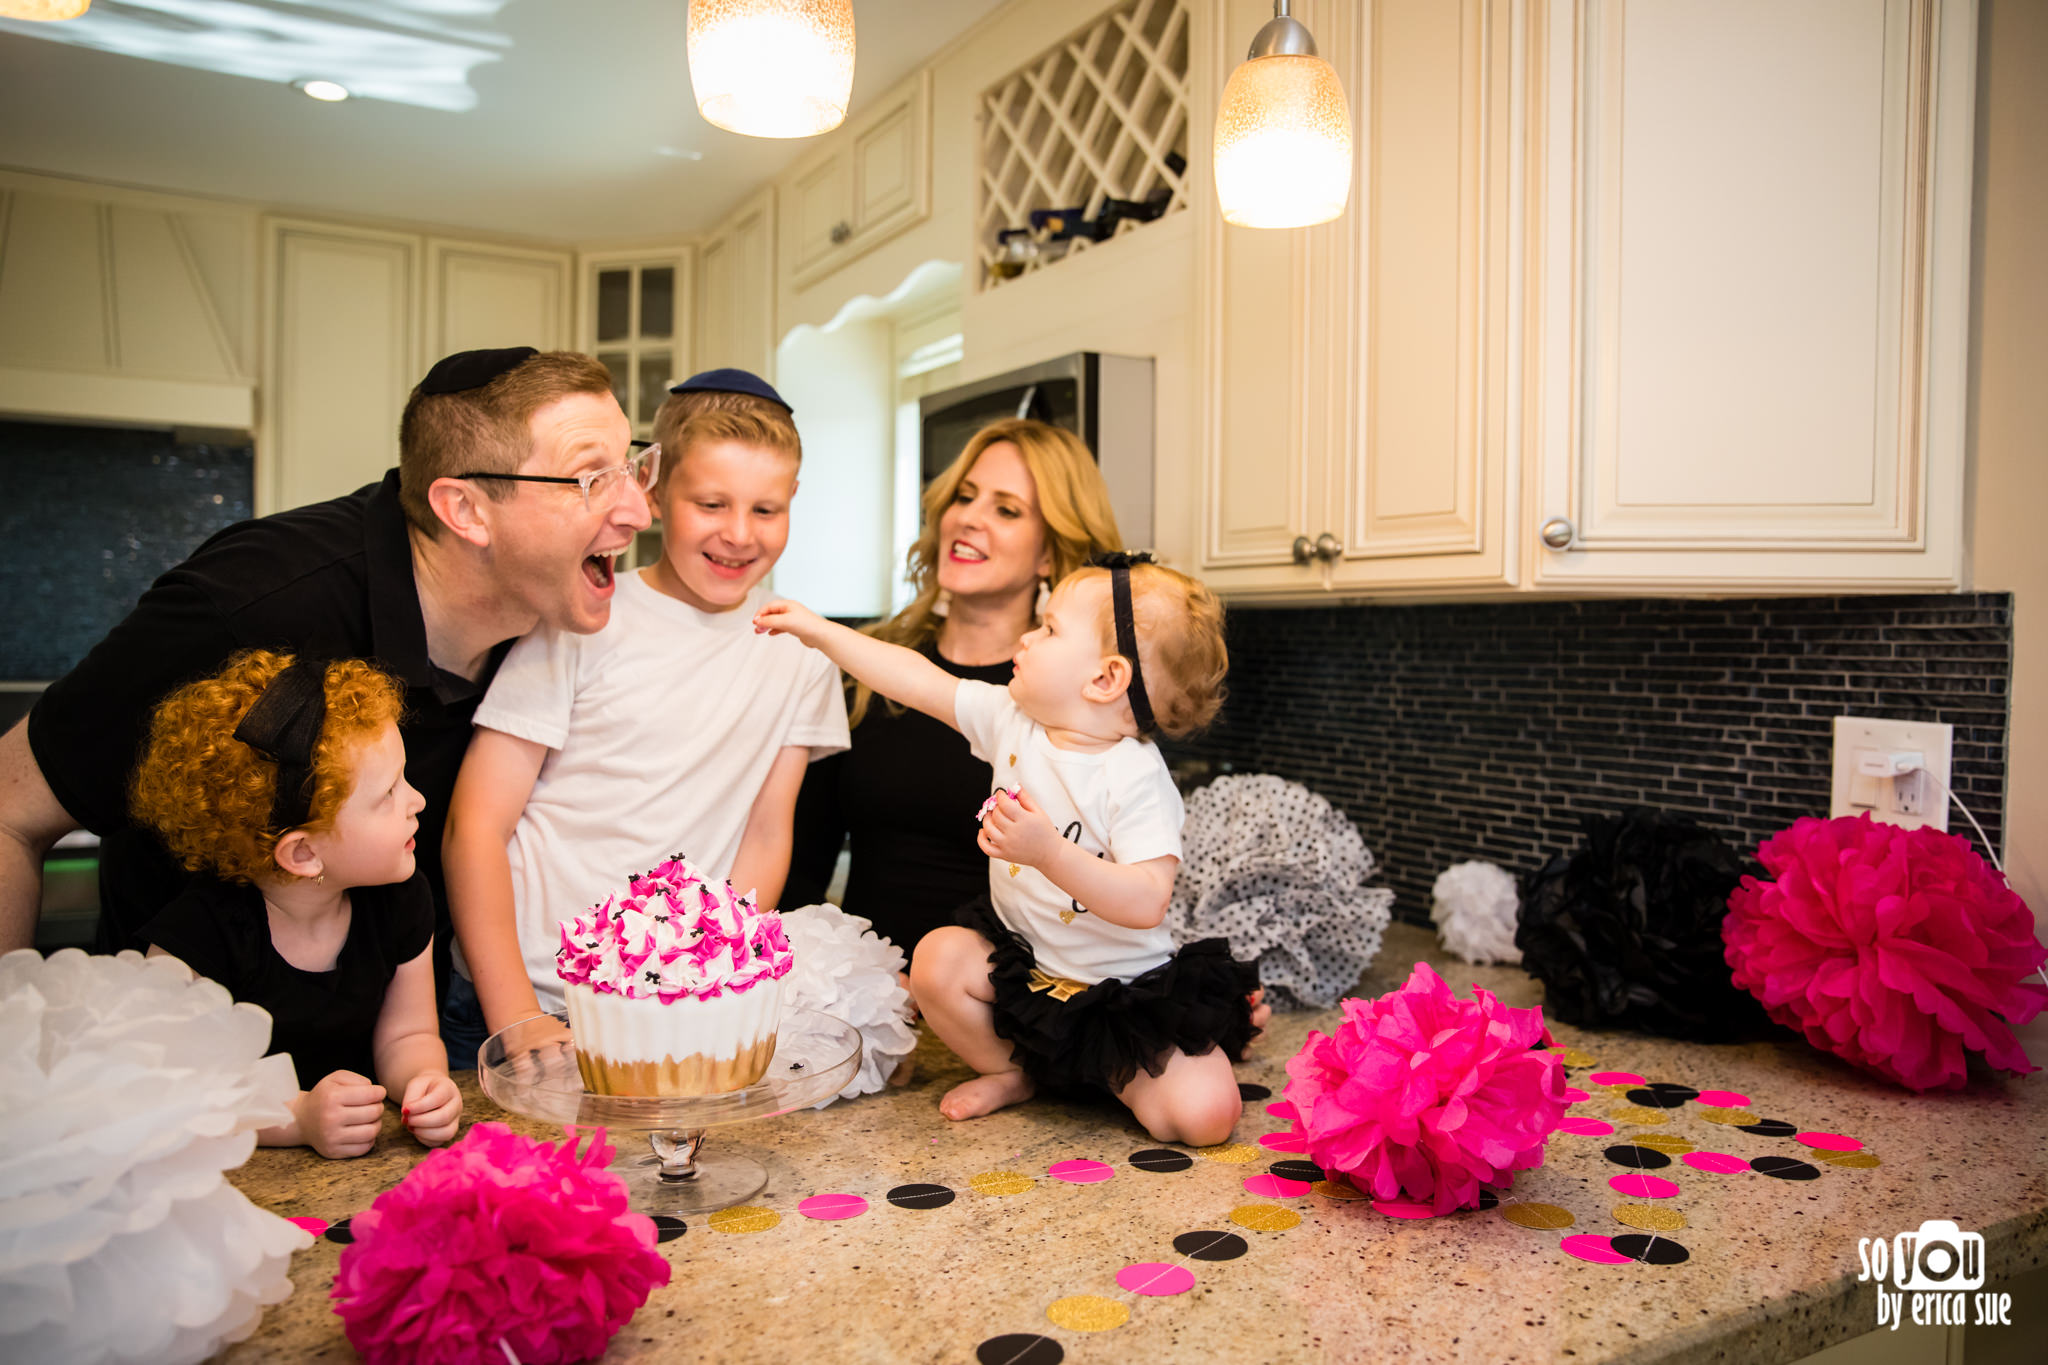 so-you-by-erica-sue-hollywood-fl-photographer-in-home-lifestyle-1st-birthday-cake-smash-3890.jpg